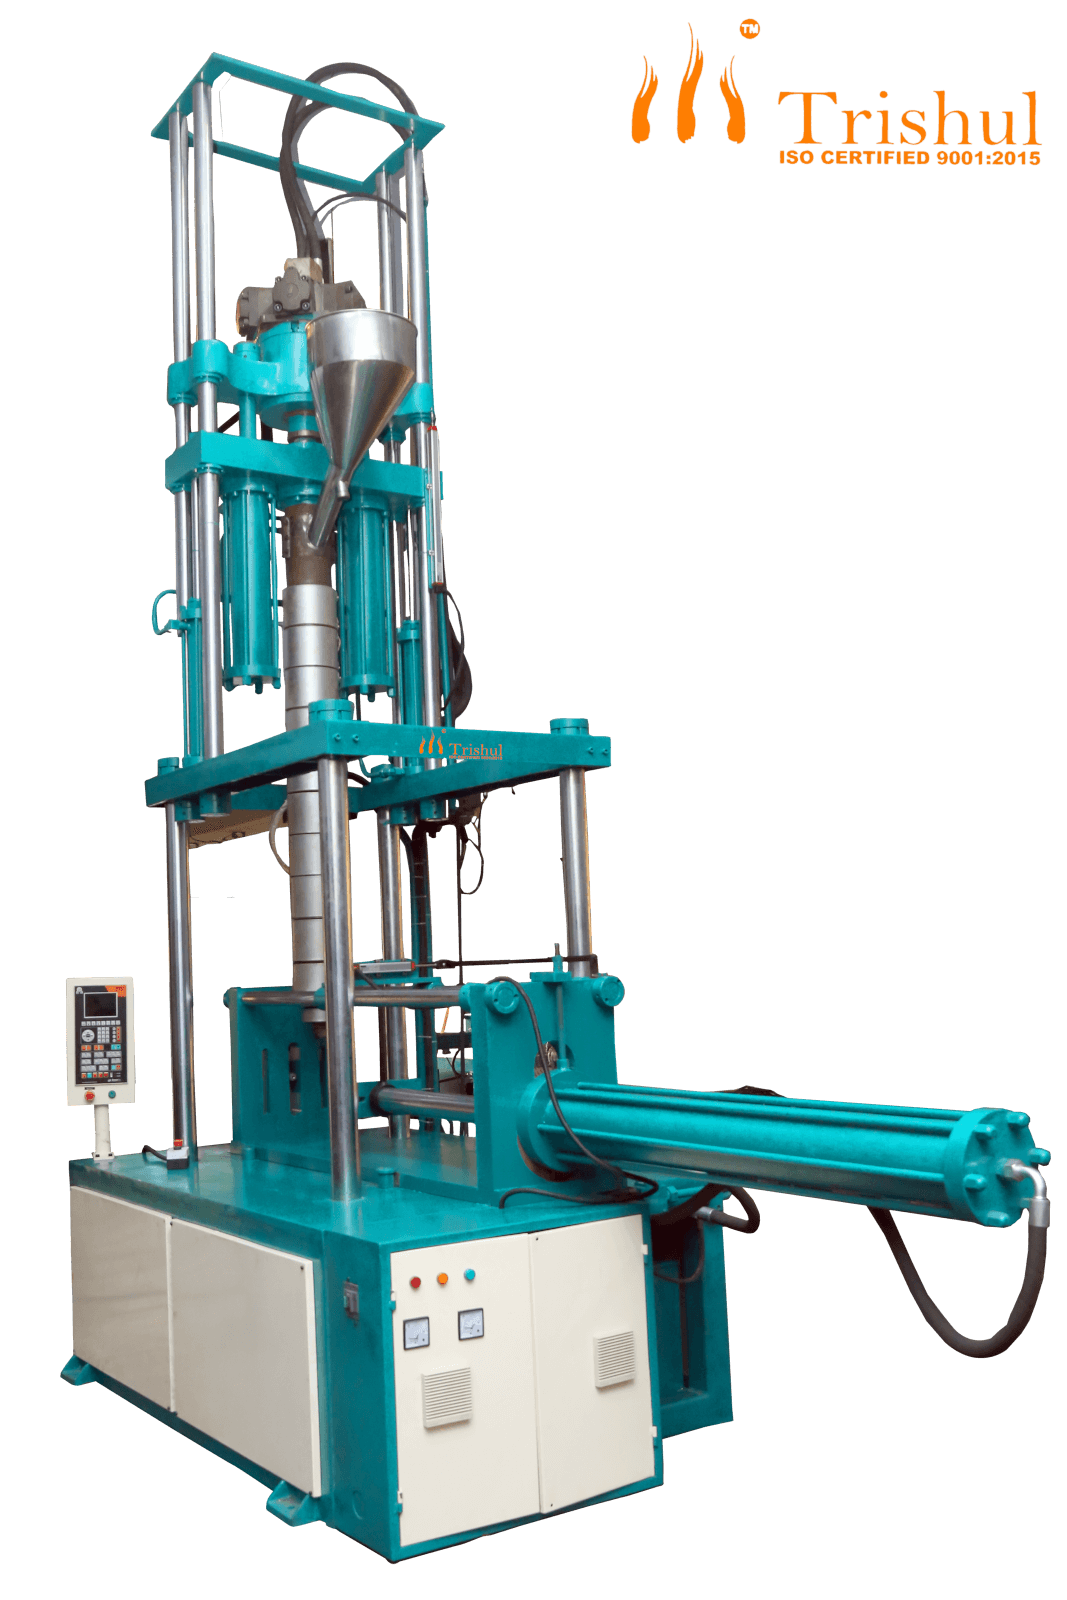 Trishul Plastic   Injection Moulding Machines Manufacturer